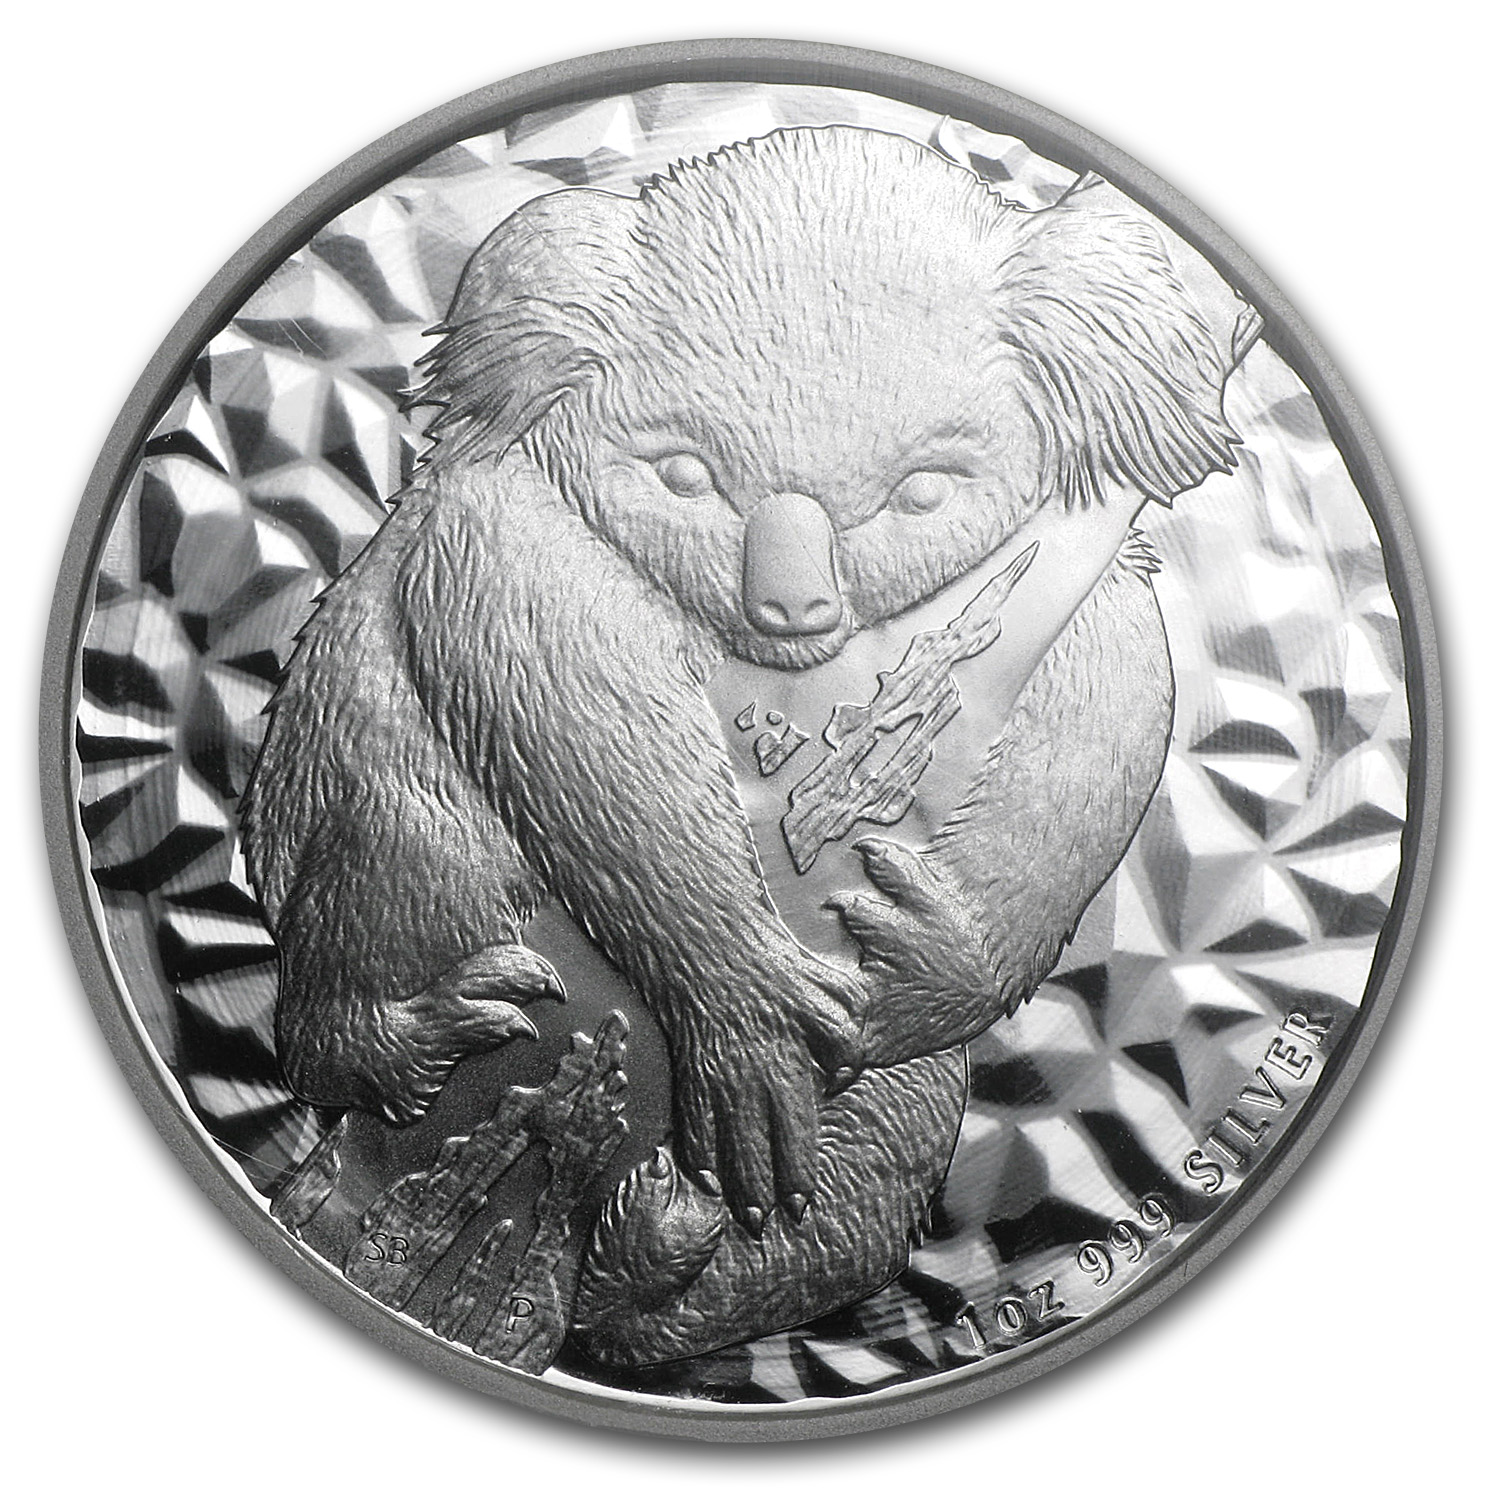 2007 Australia 1 oz Silver Koala MS-70 NGC (First Year of Issue)